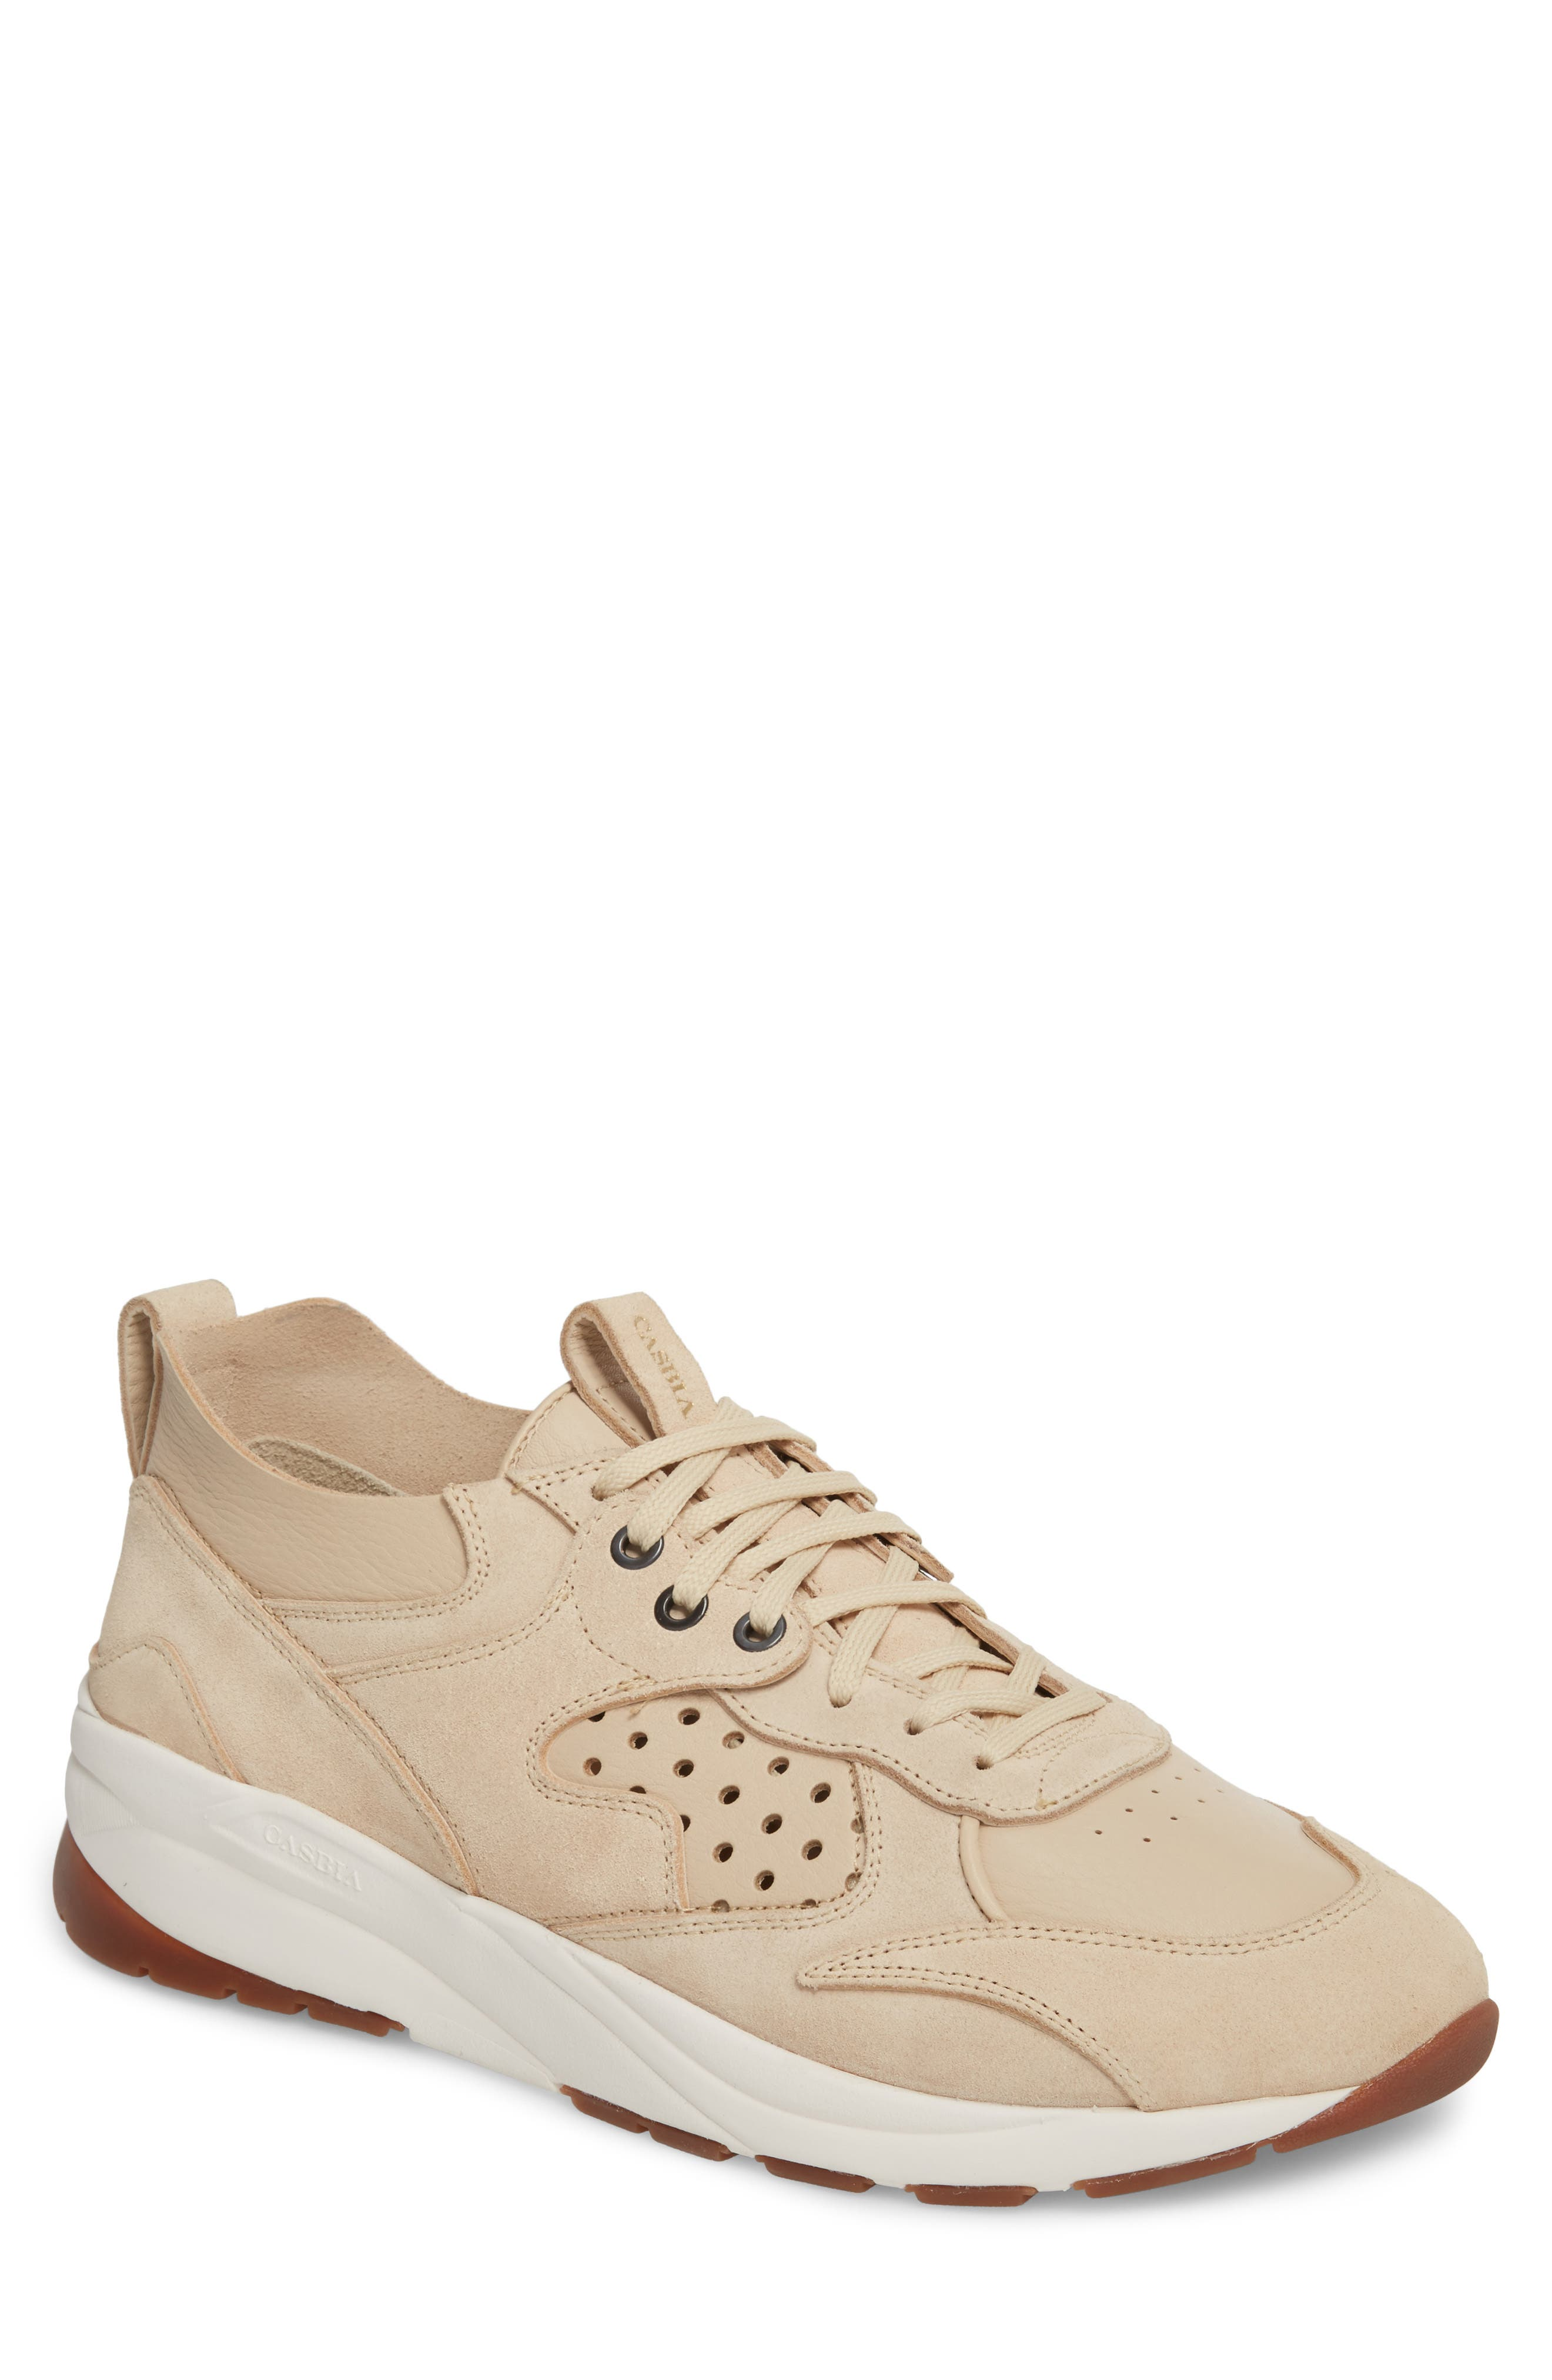 Champion Veloce Sneaker,                             Main thumbnail 1, color,                             Beige Suede